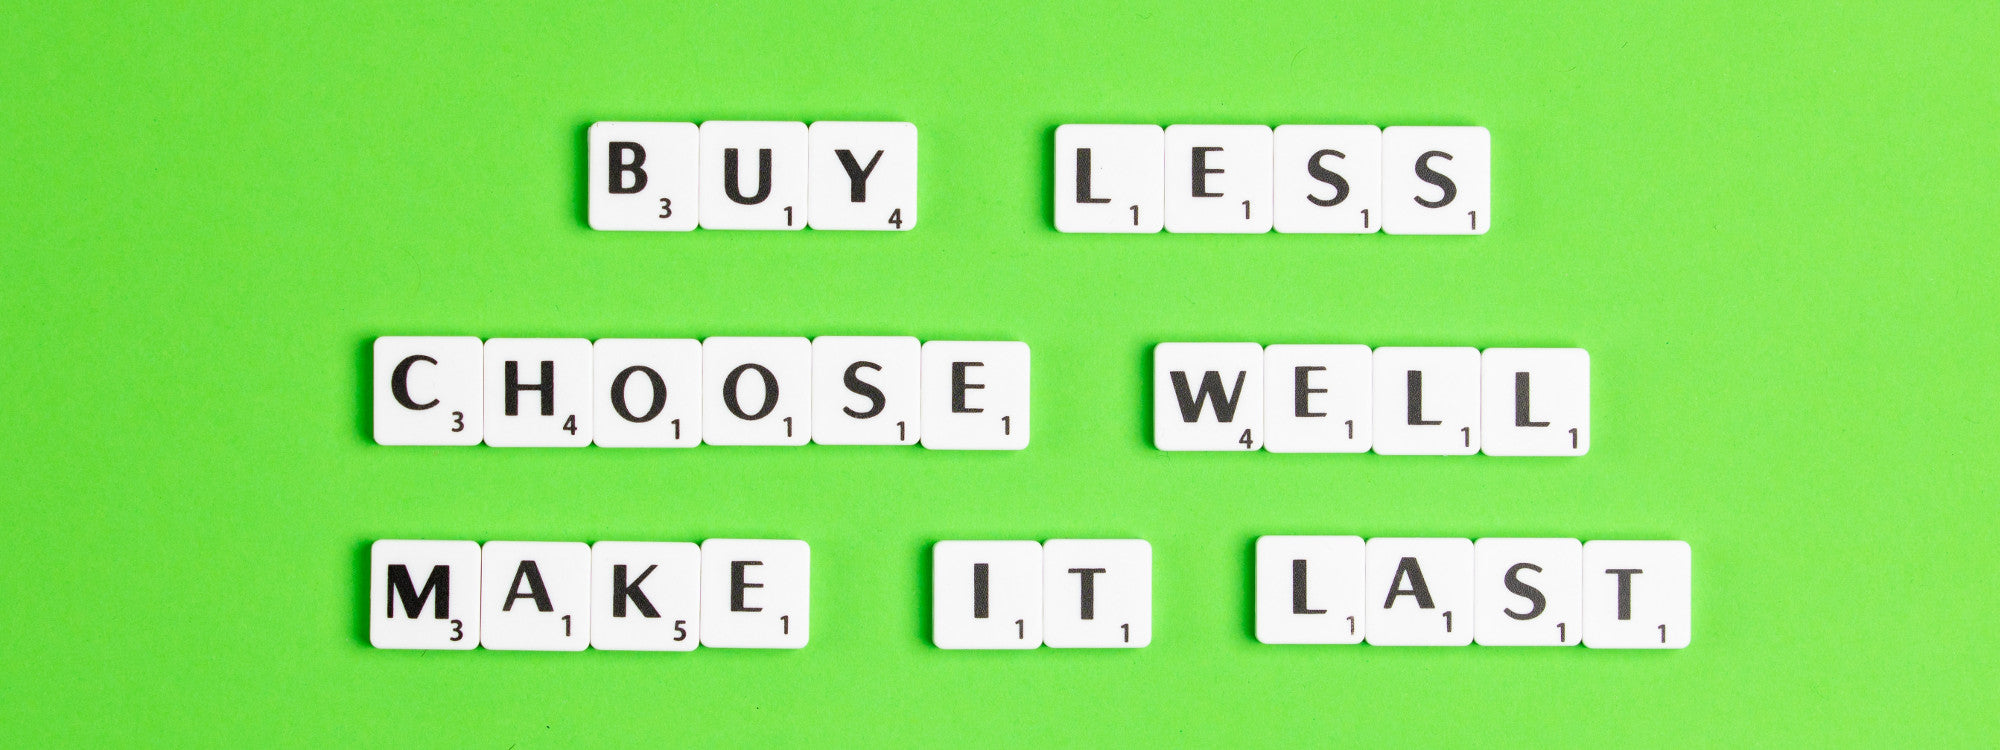 Conscious Living means buying less and making it last longer